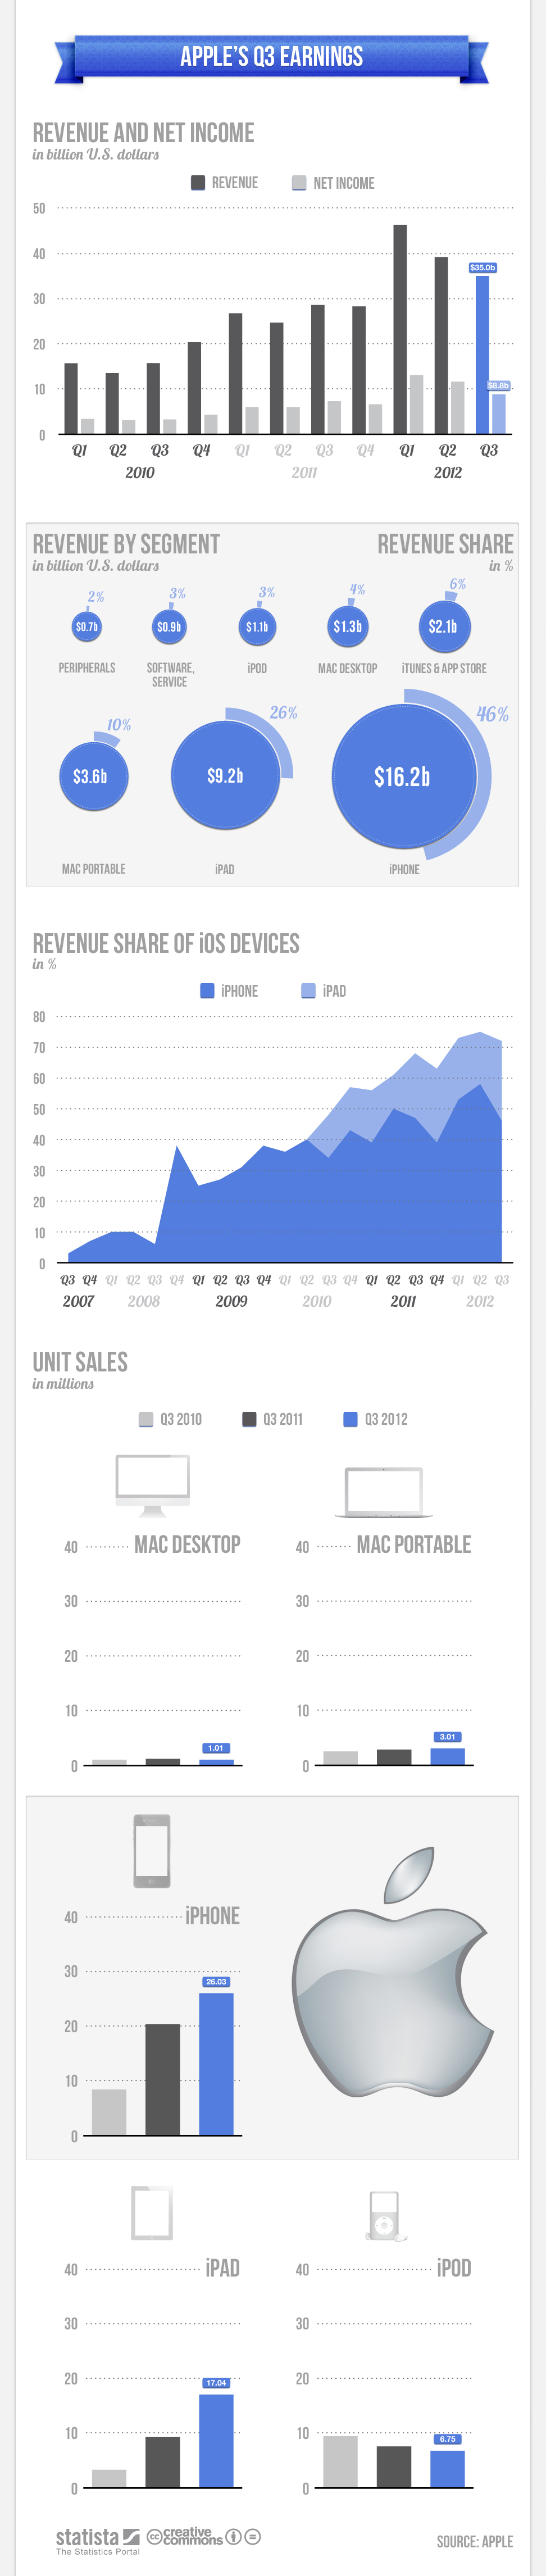 Apple earning 2012 Q3